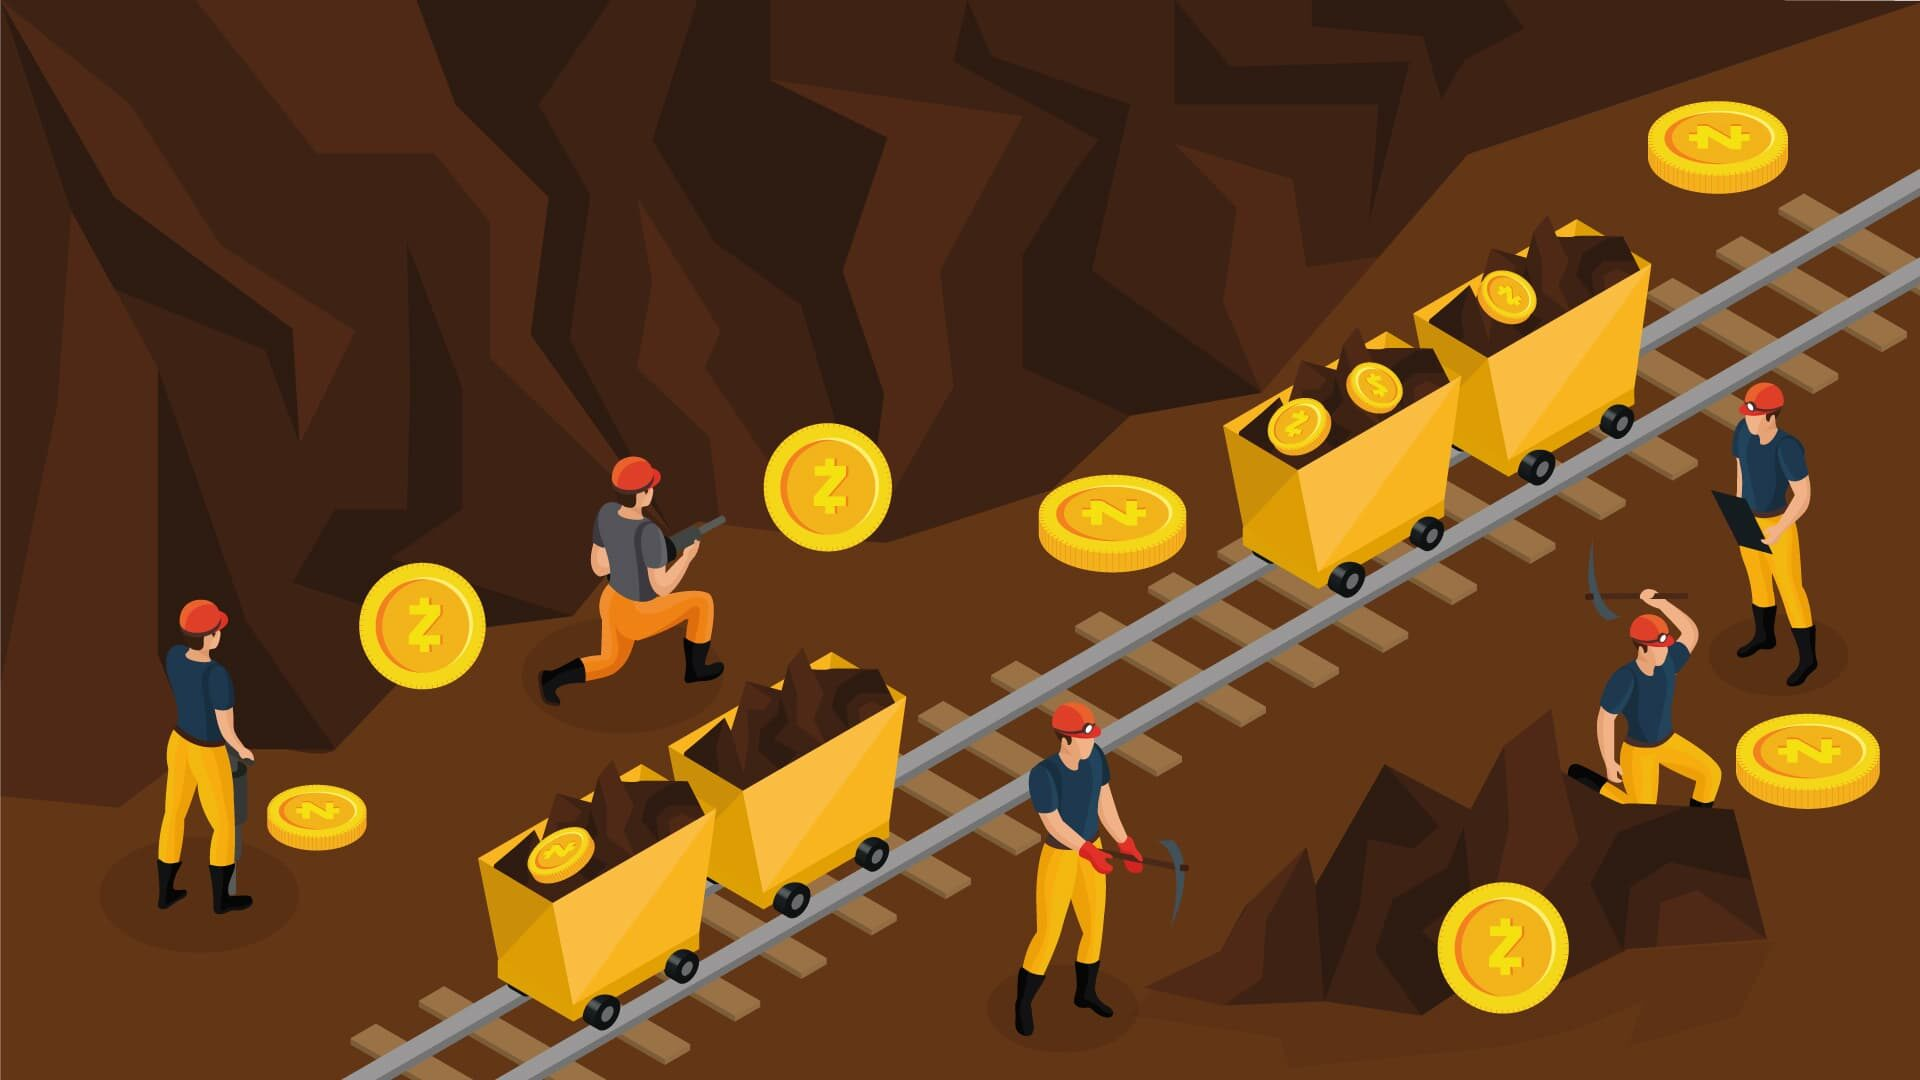 Is Mining Zcash Still Profitable?